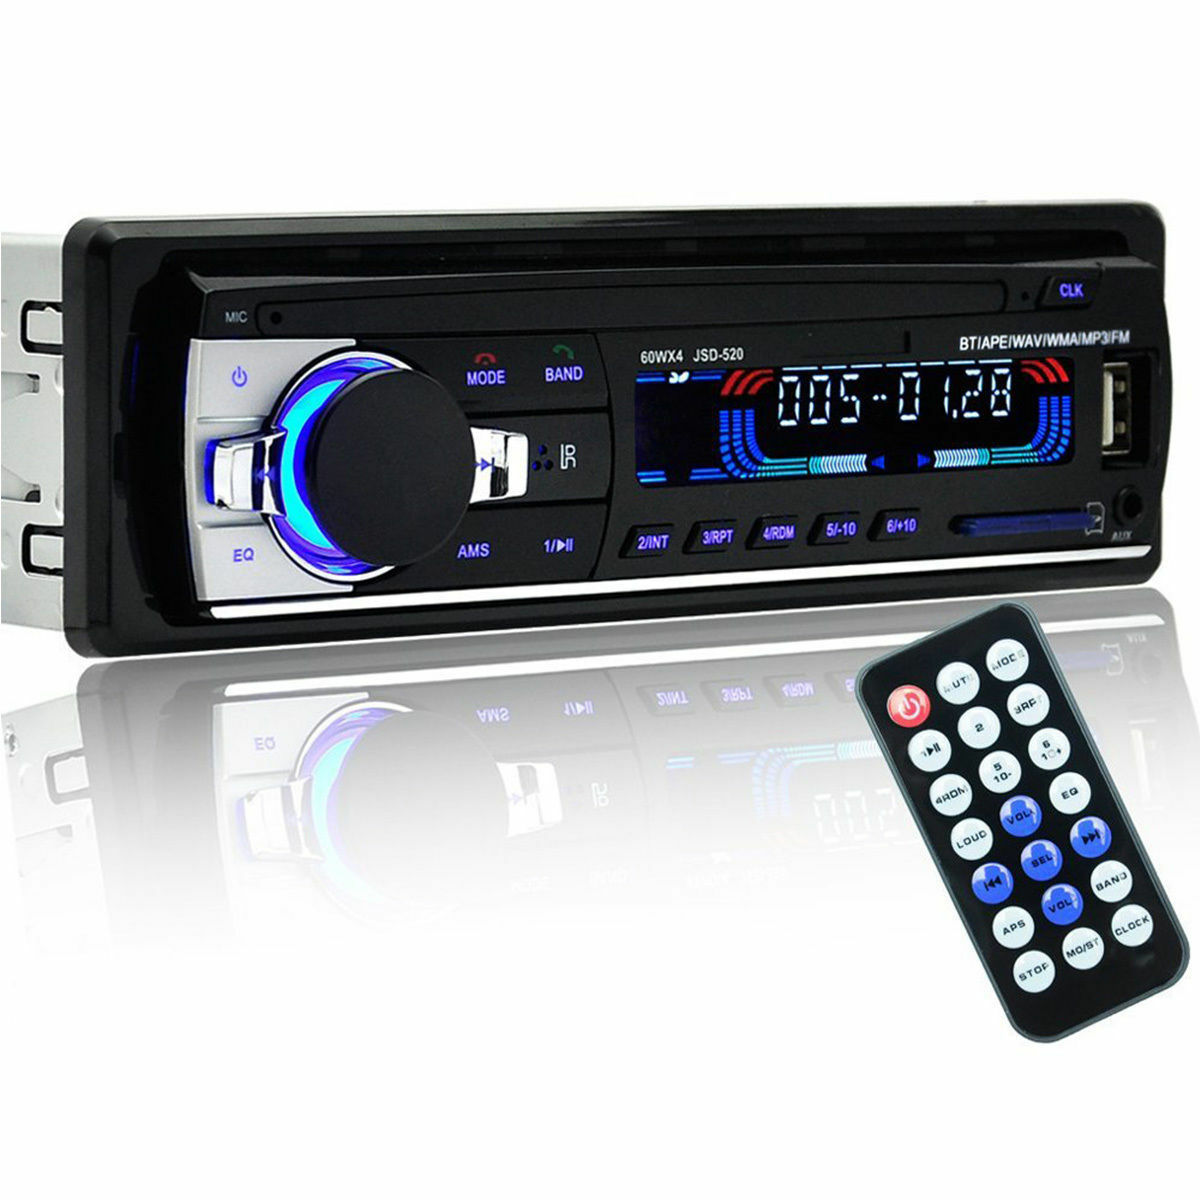 bluetooth car stereo radio head unit player mp3 usb sd aux in fm in dash ipod uk. Black Bedroom Furniture Sets. Home Design Ideas